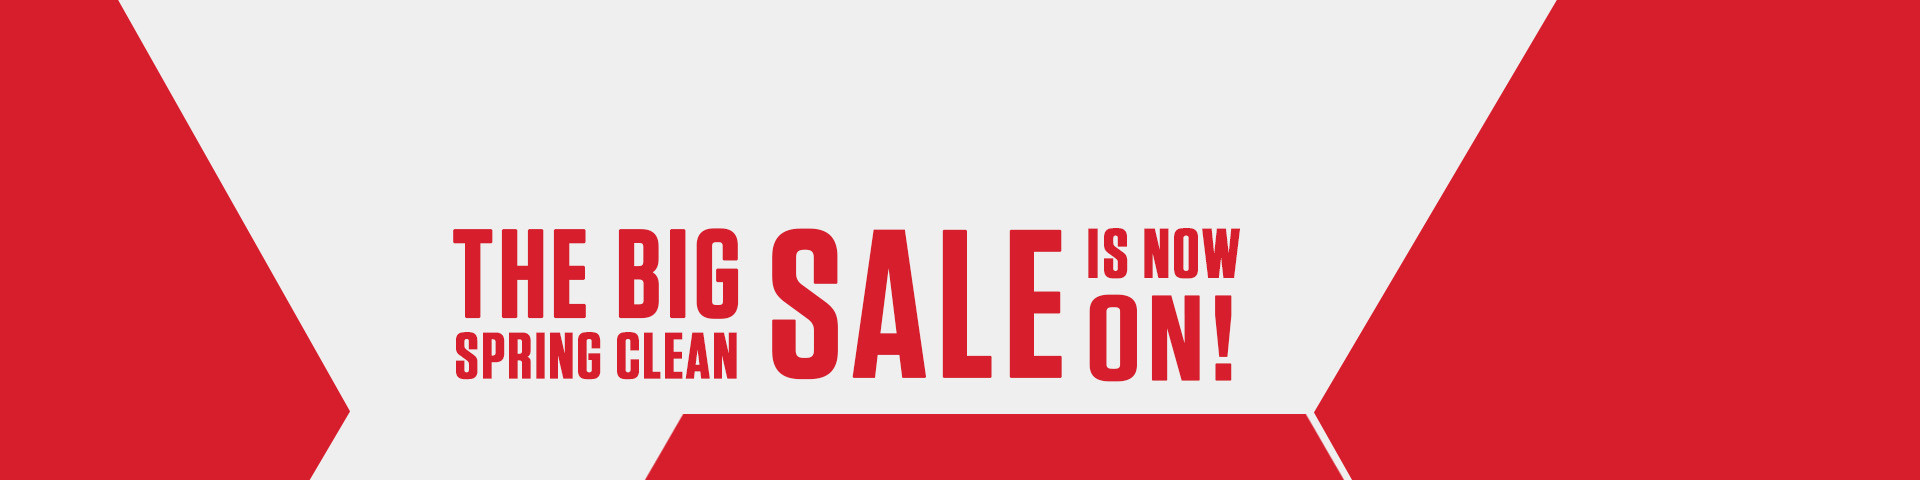 The Big pring Clean Sale is now on